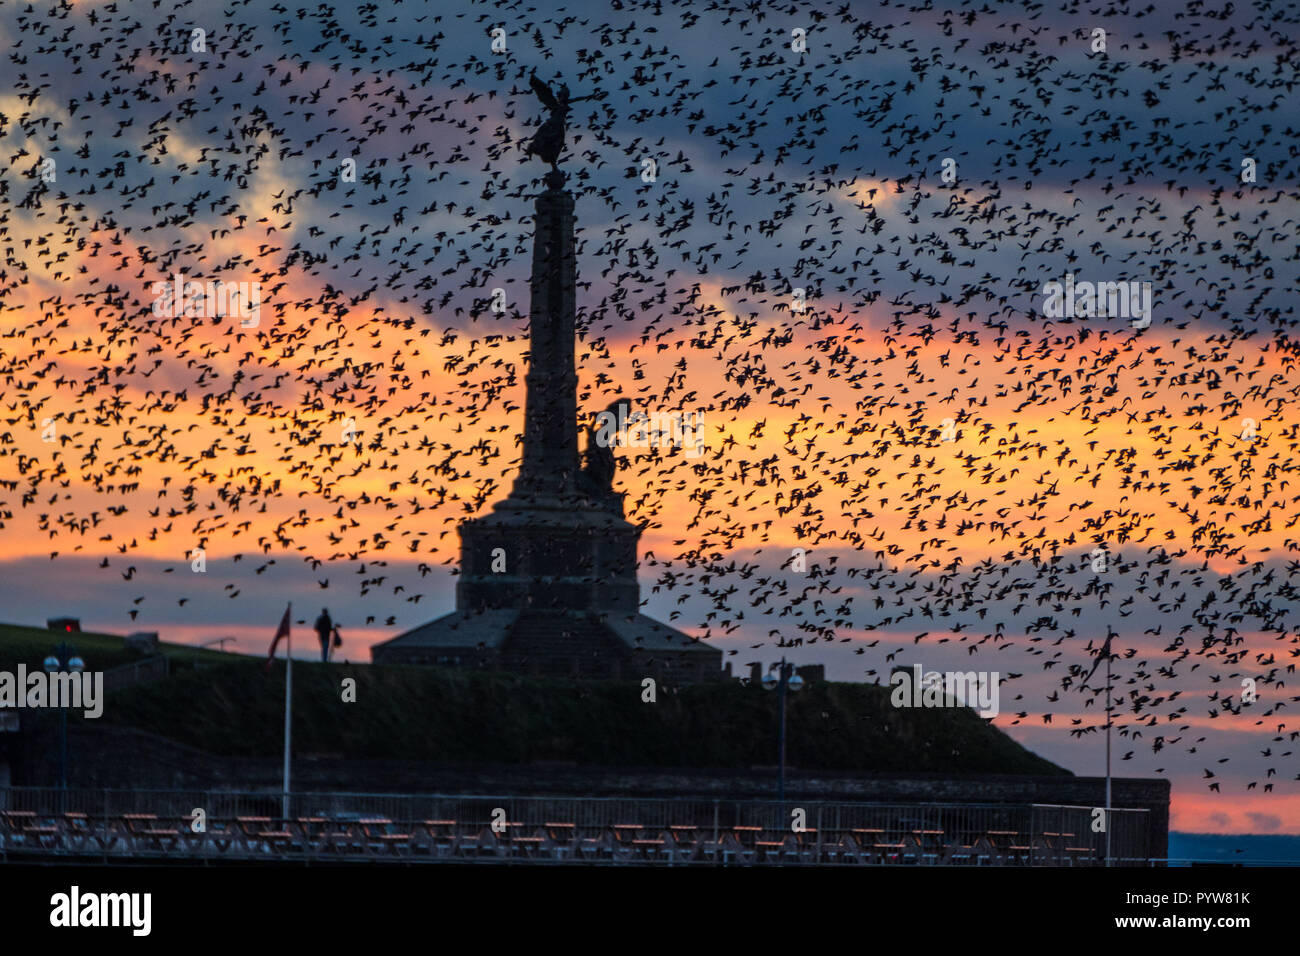 Aberystwyth Wales UK, 30/10/2018. UK Weather: As the sun sets on clear, cold  and sunny October day tens of thousands of tiny starlings fly in dense 'murmurations' in the sky above Aberystwyth's iconic war memorial,  before swooping down to roost for the night on the forest  of cast iron legs underneath the town's Victorian seaside attraction. Aberystwyth is one of the few urban roosts in the country and draws people from all over the UK to witness the spectacular nightly displays.  photo credit: Keith Morris / Alamy Live News - Stock Image